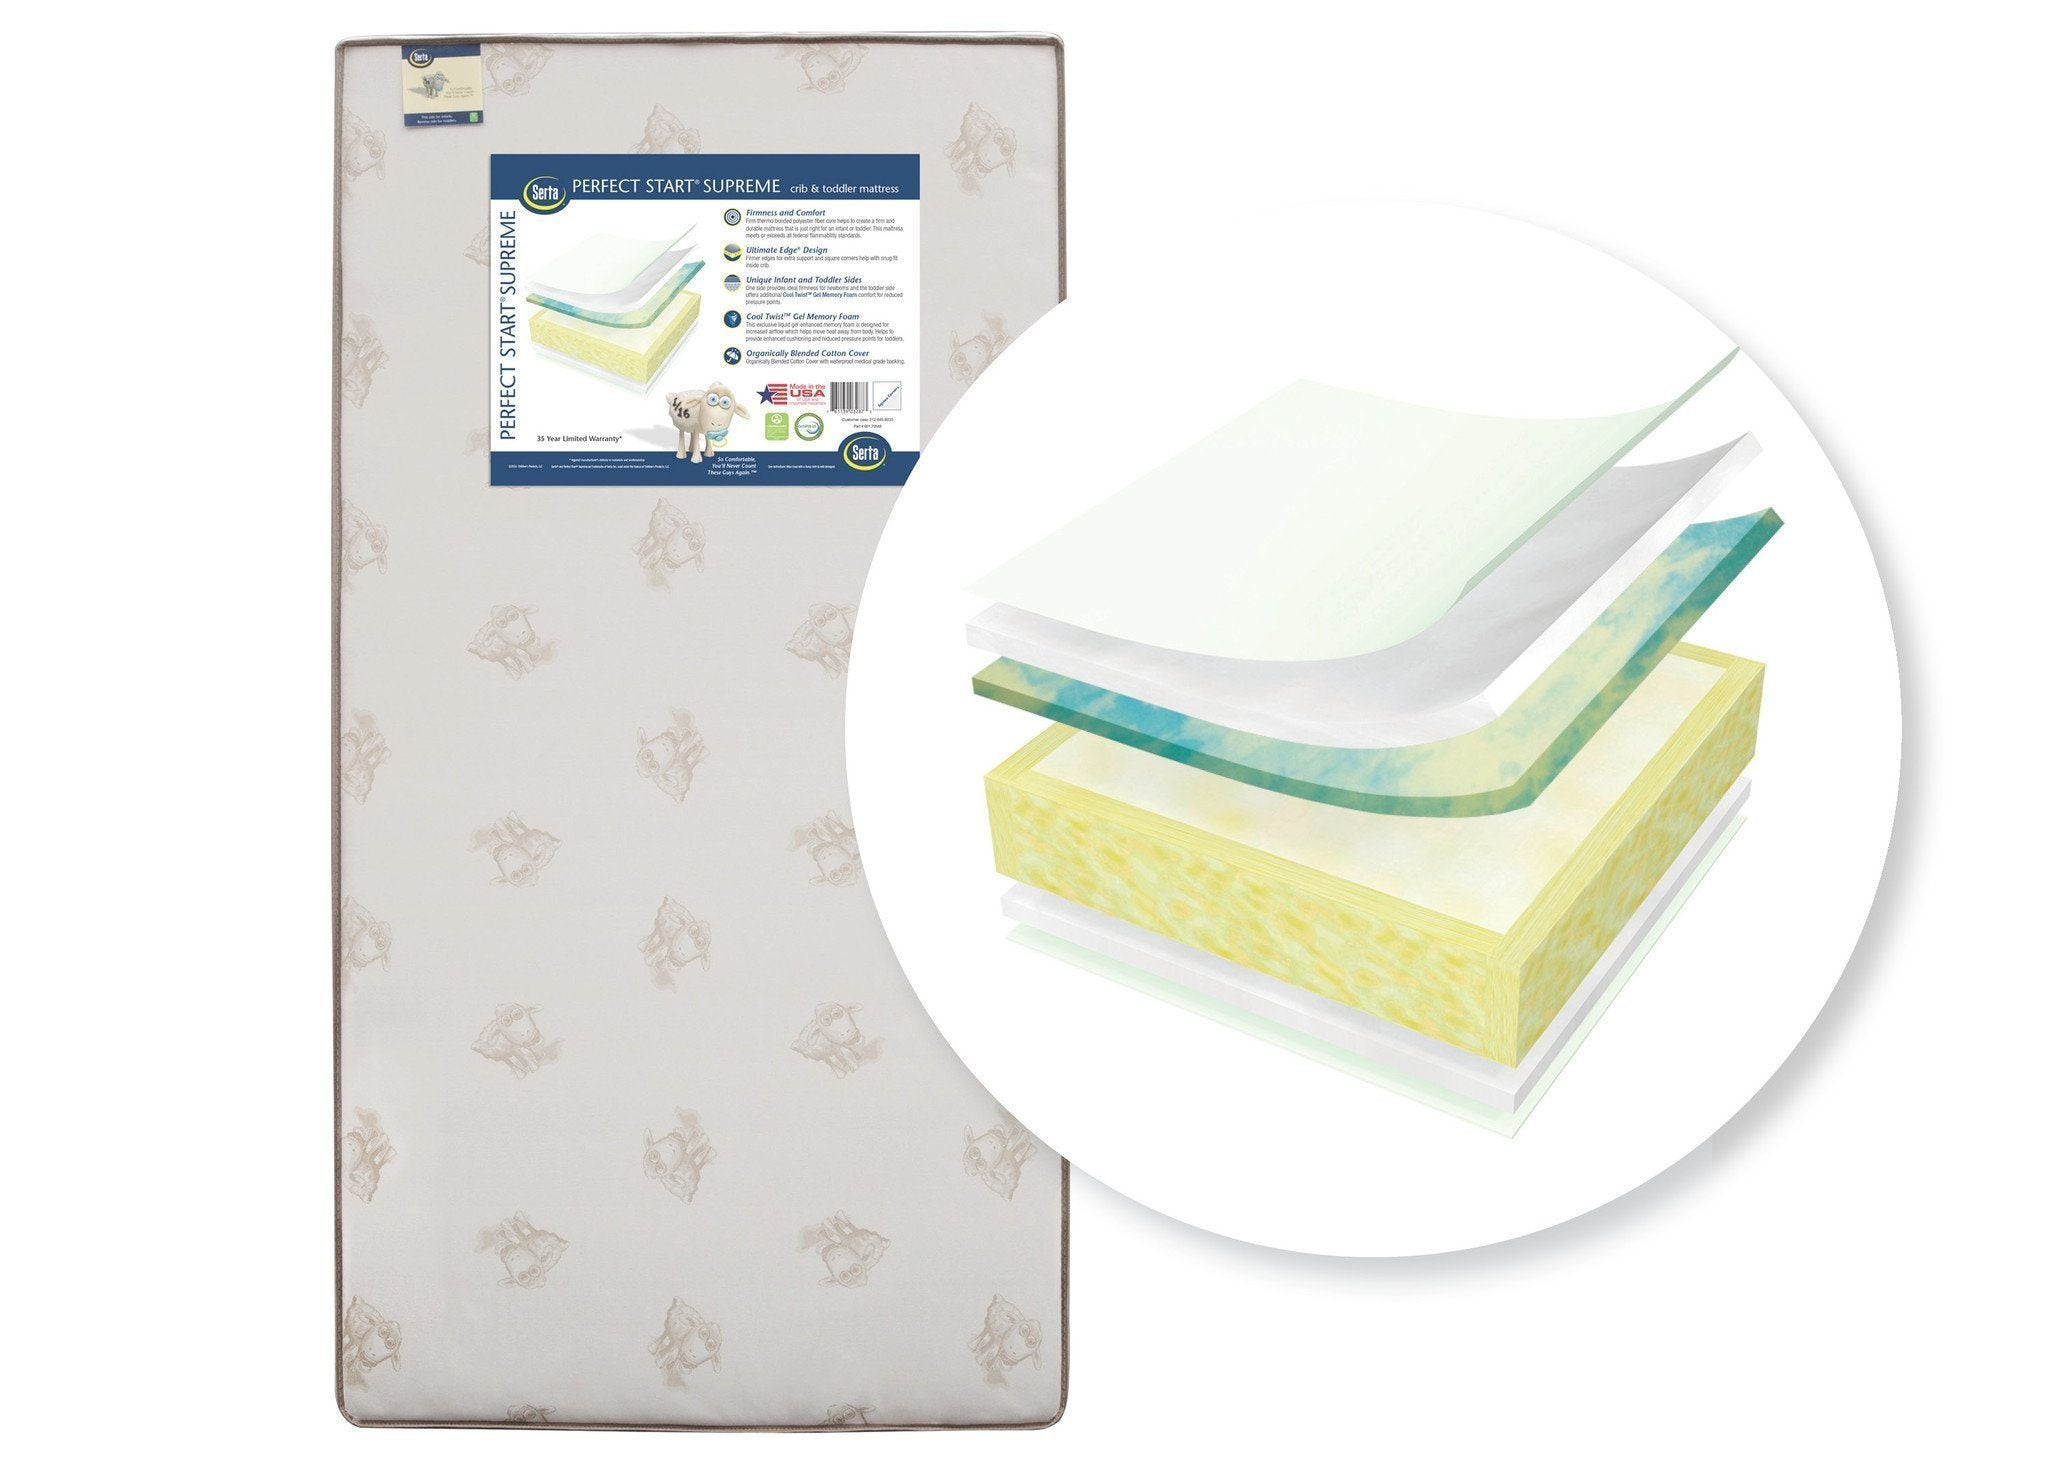 Serta Perfect Start Supreme Crib & Toddler Mattress, Front View, a2a No Color (NO)